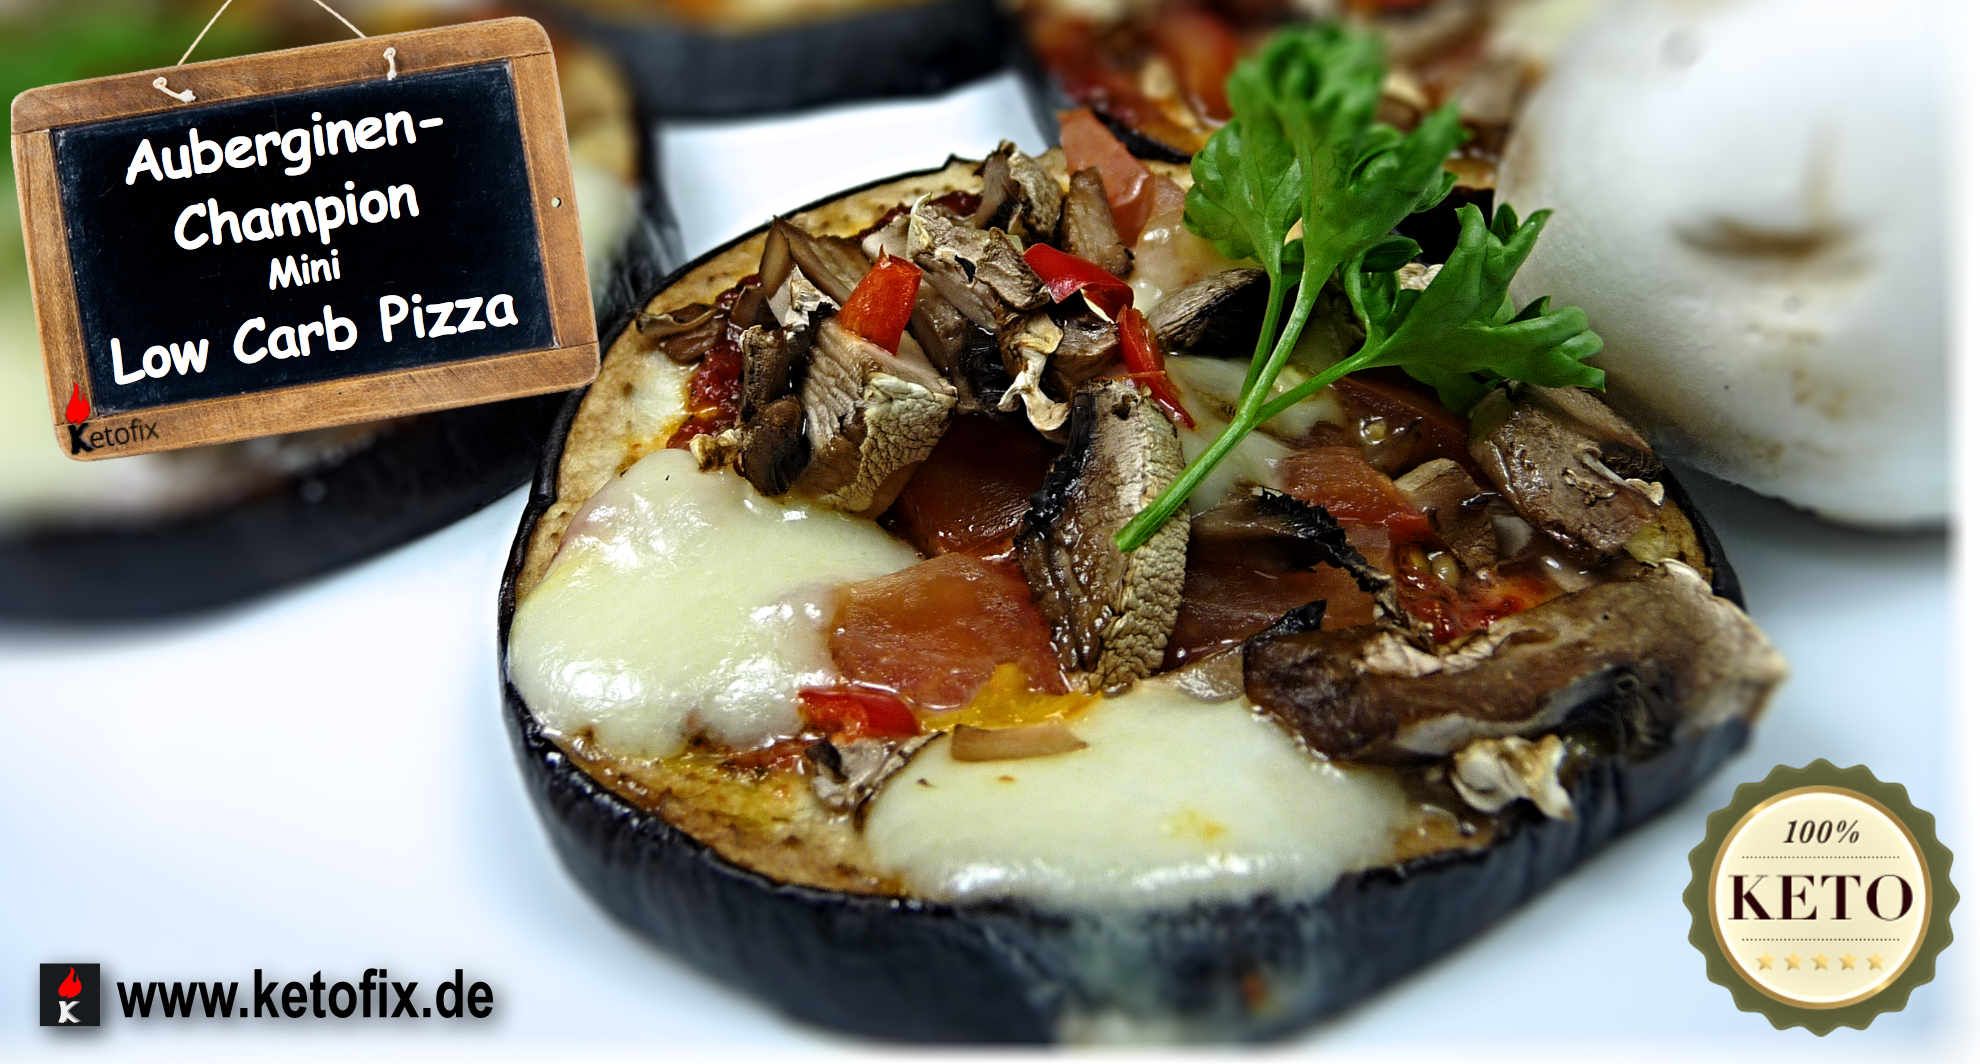 Ketofix Low-Carb Pizza Champion Aubergine